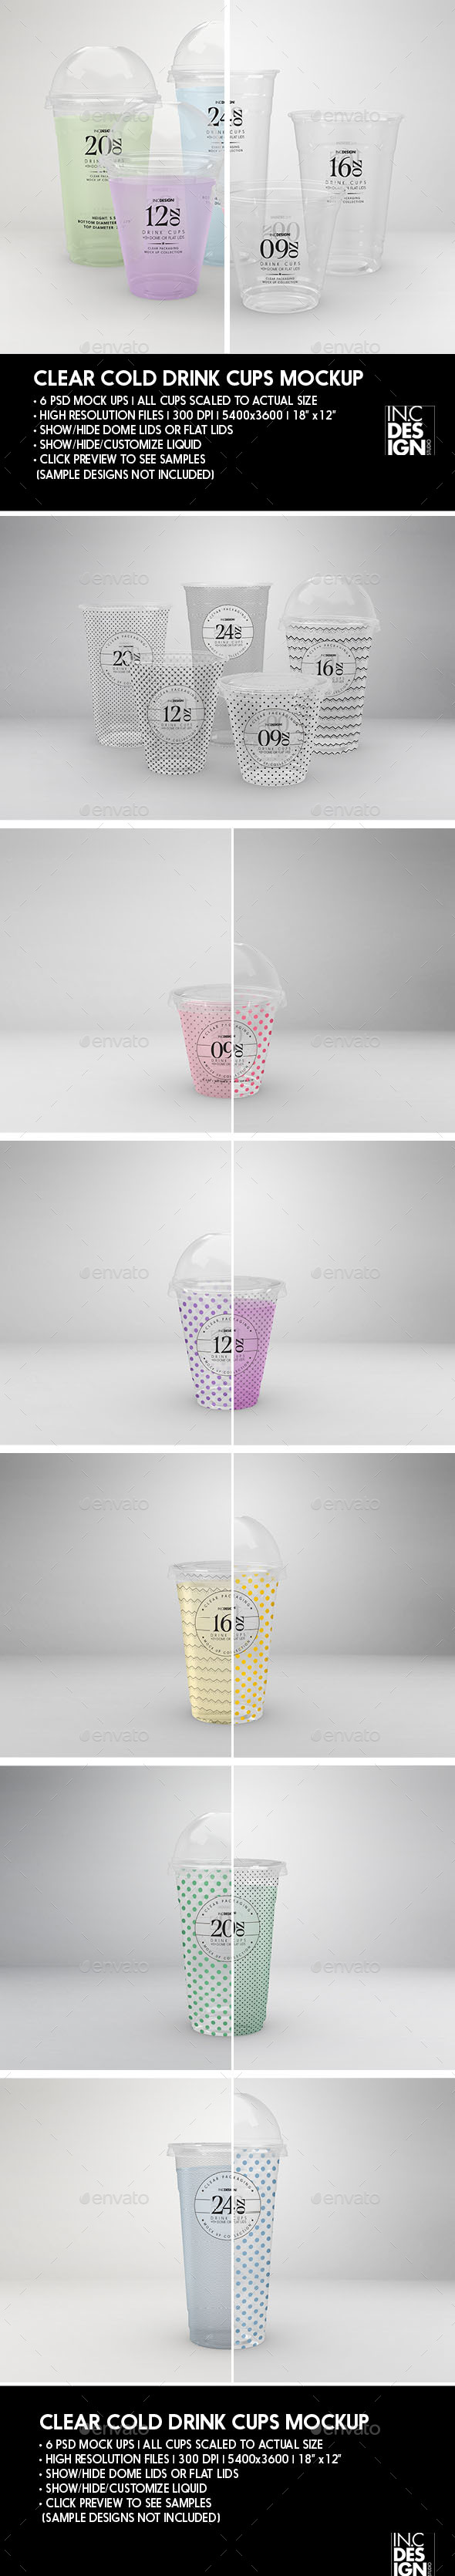 Clear Cold Drink Cups Packaging Mock Up - Food and Drink Packaging